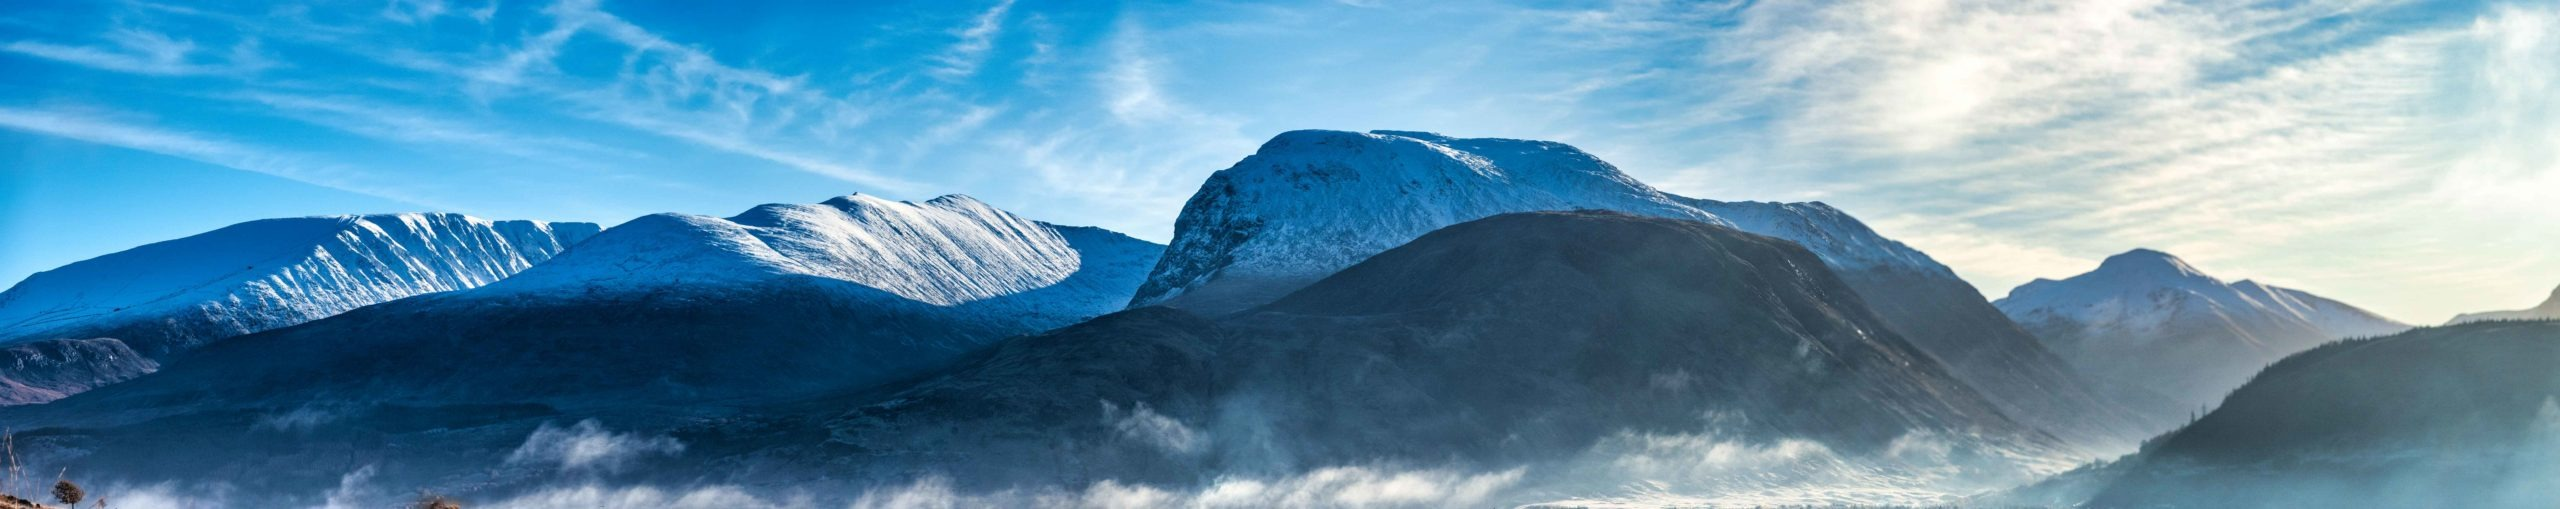 Ben Nevis in Winter conditions. Shot by one of our Ben Nevis Guides